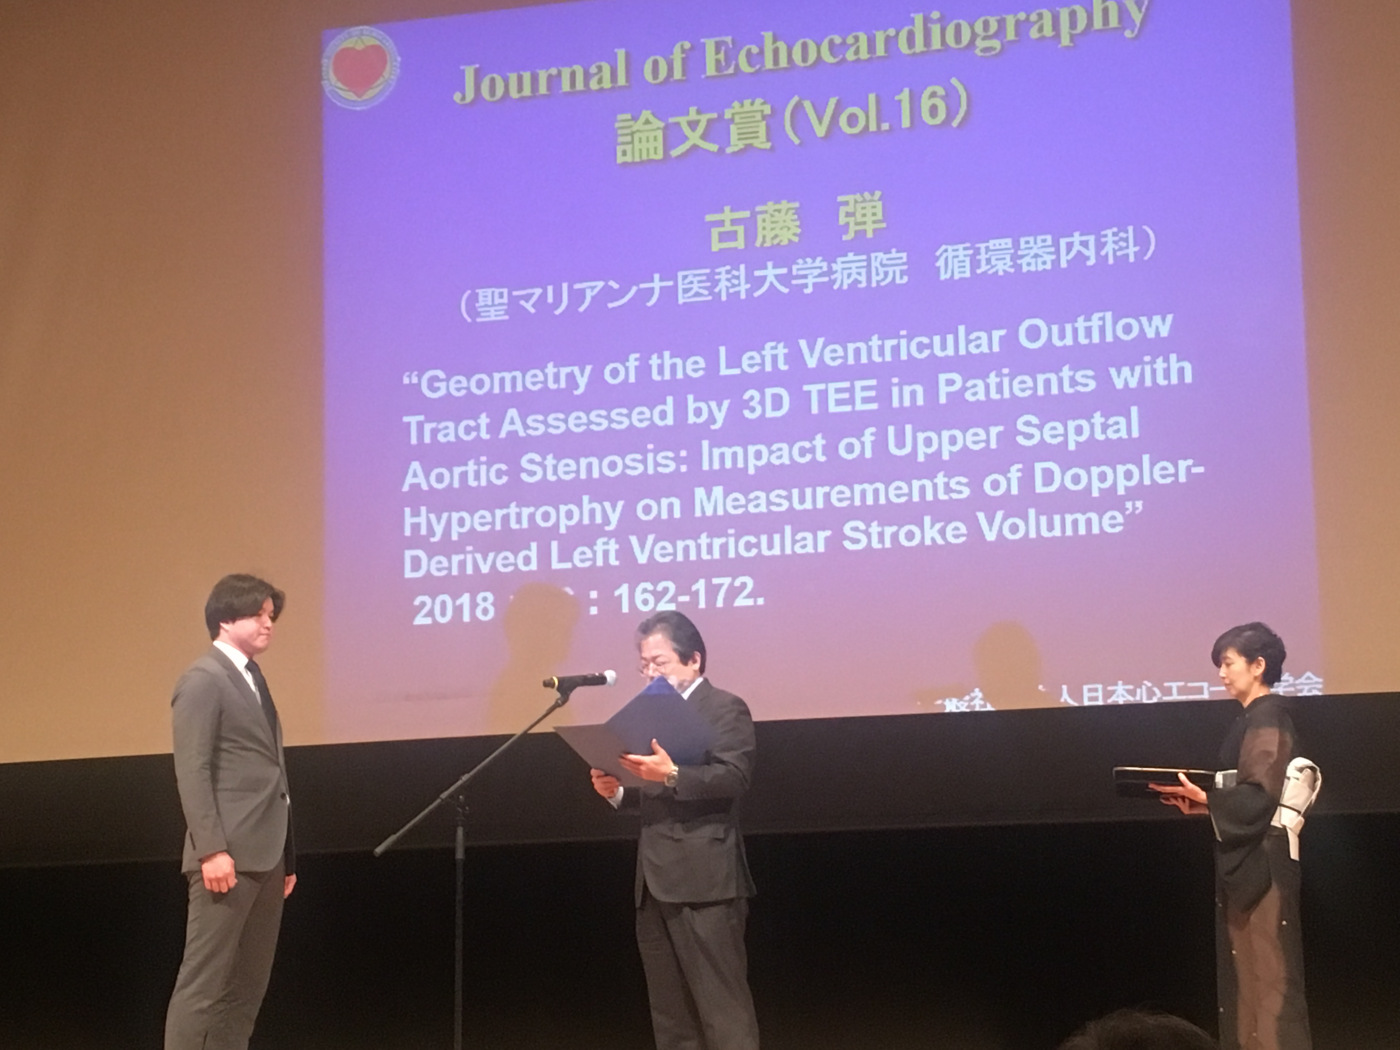 Journal of Echocardiography 論文賞(Vol. 16) 受賞